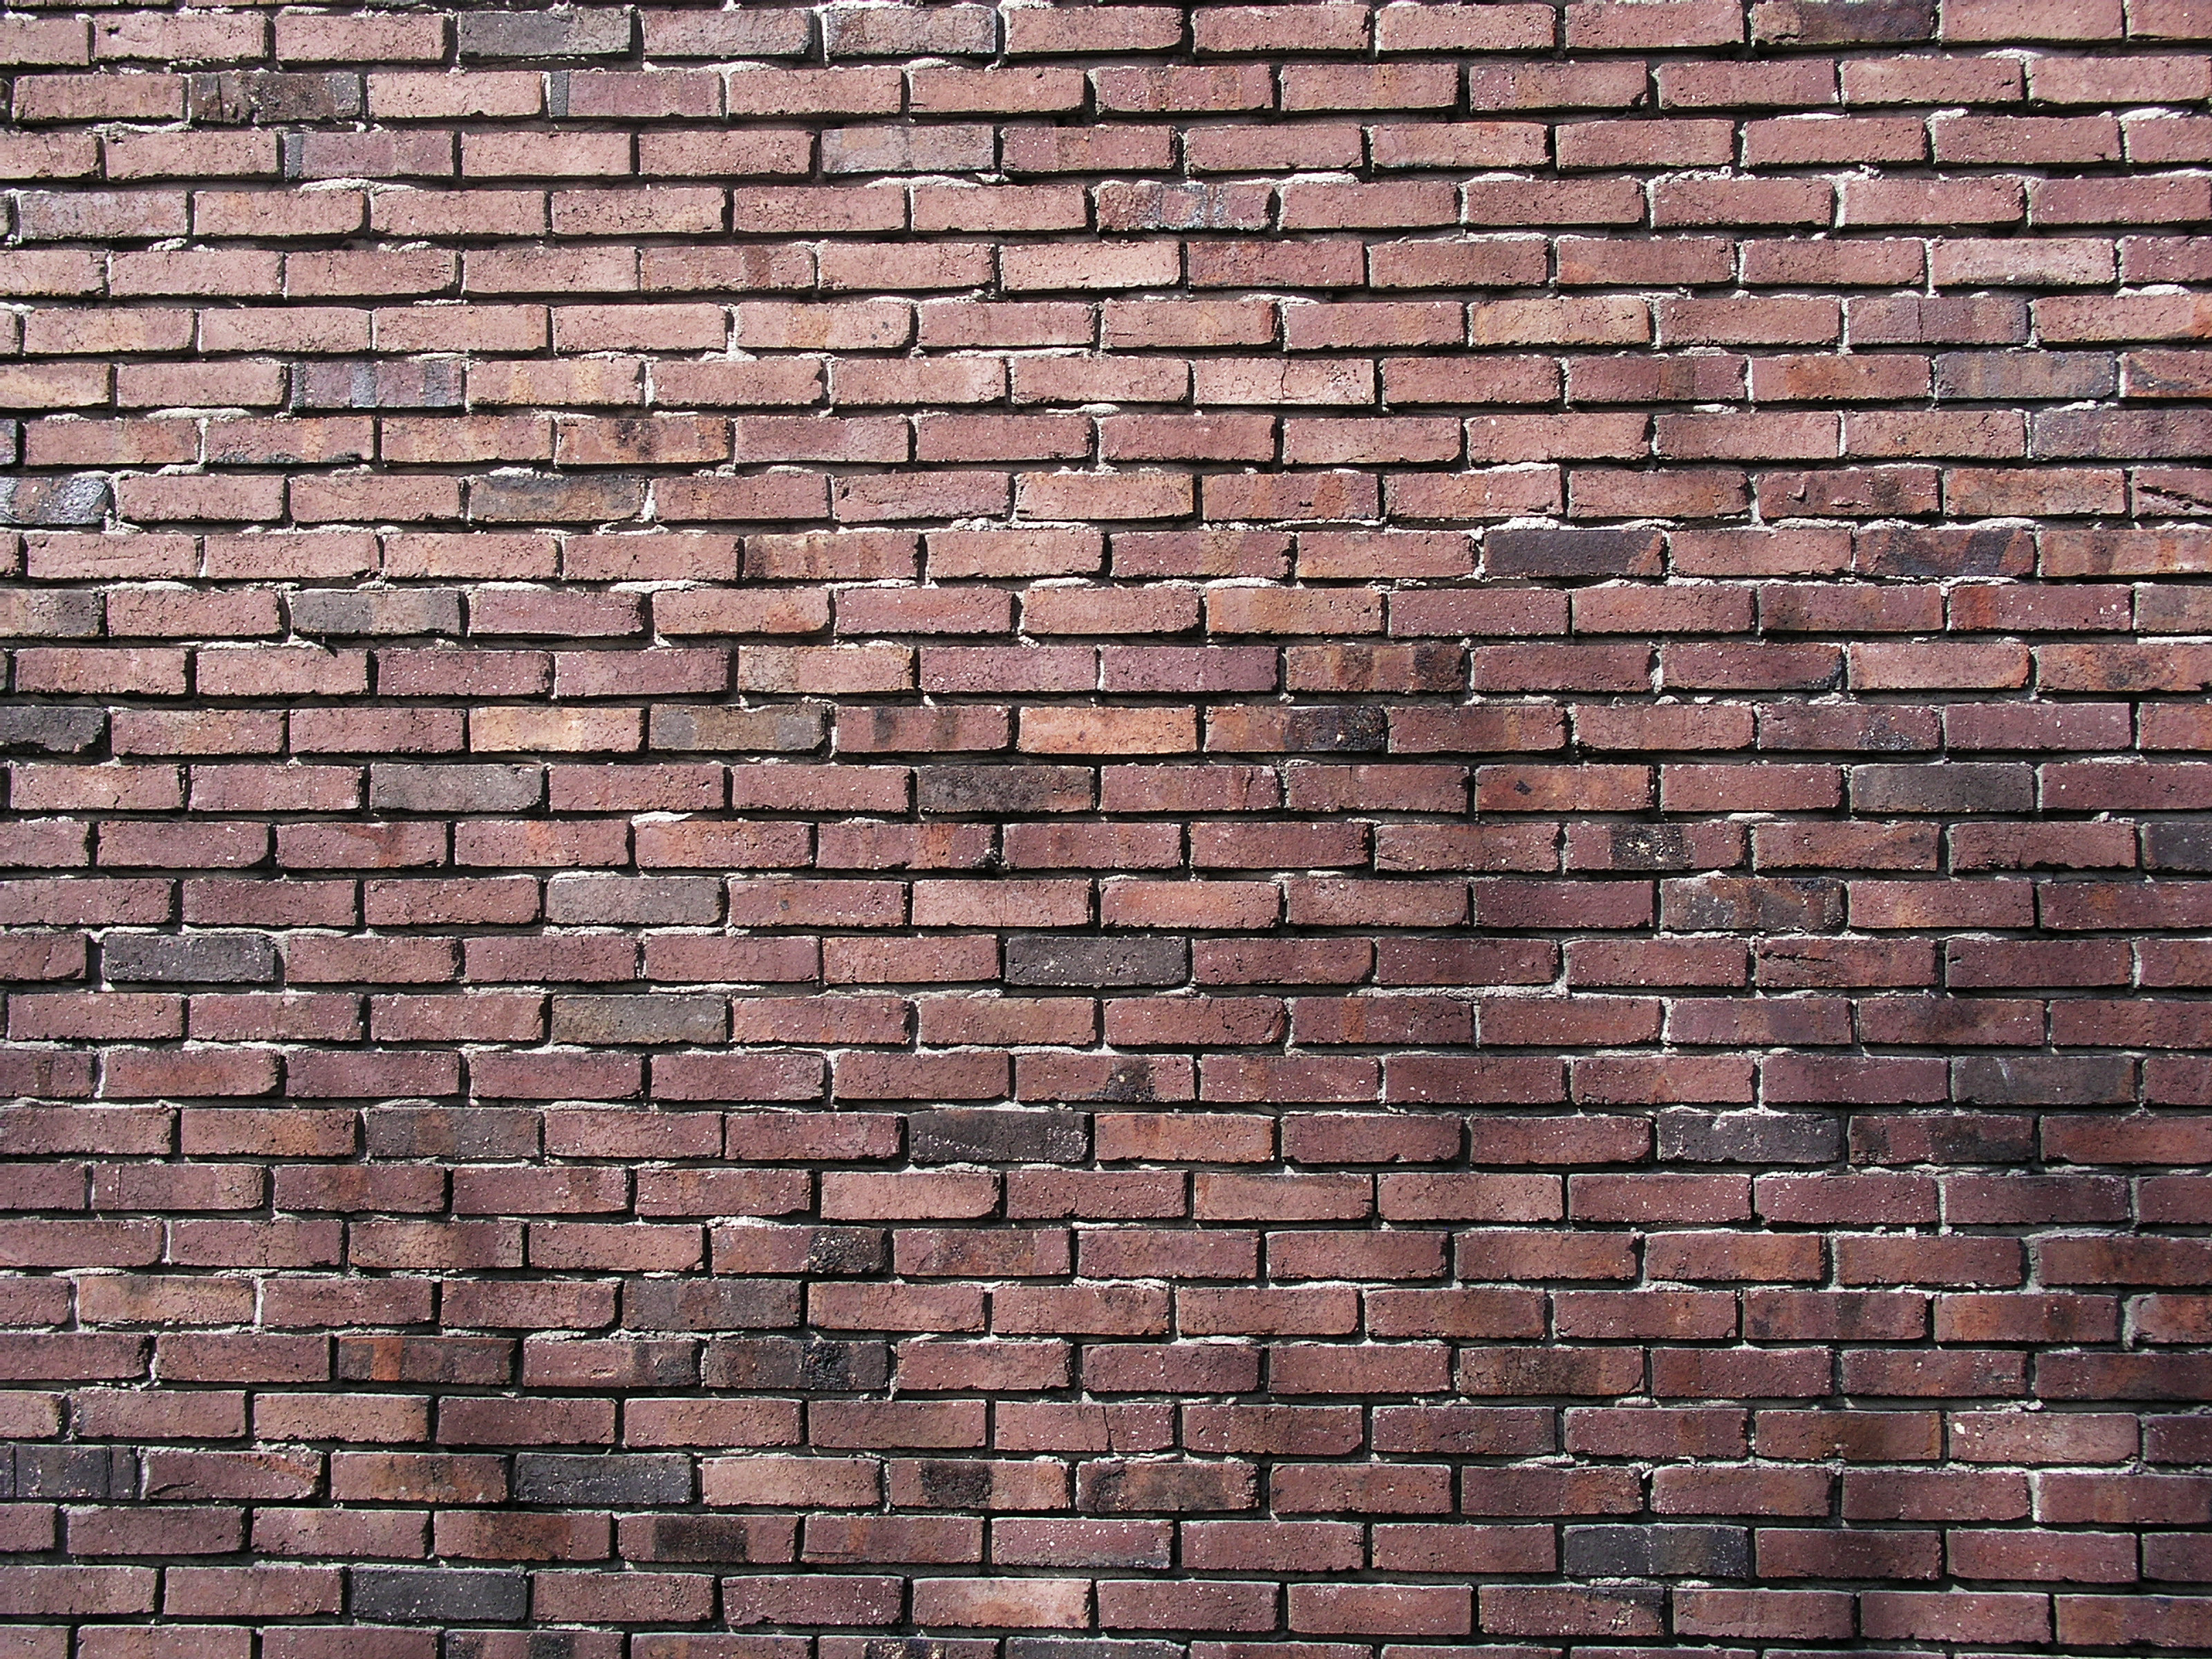 Android Wallpaper Another Brick in the Wall Android News 3200x2400